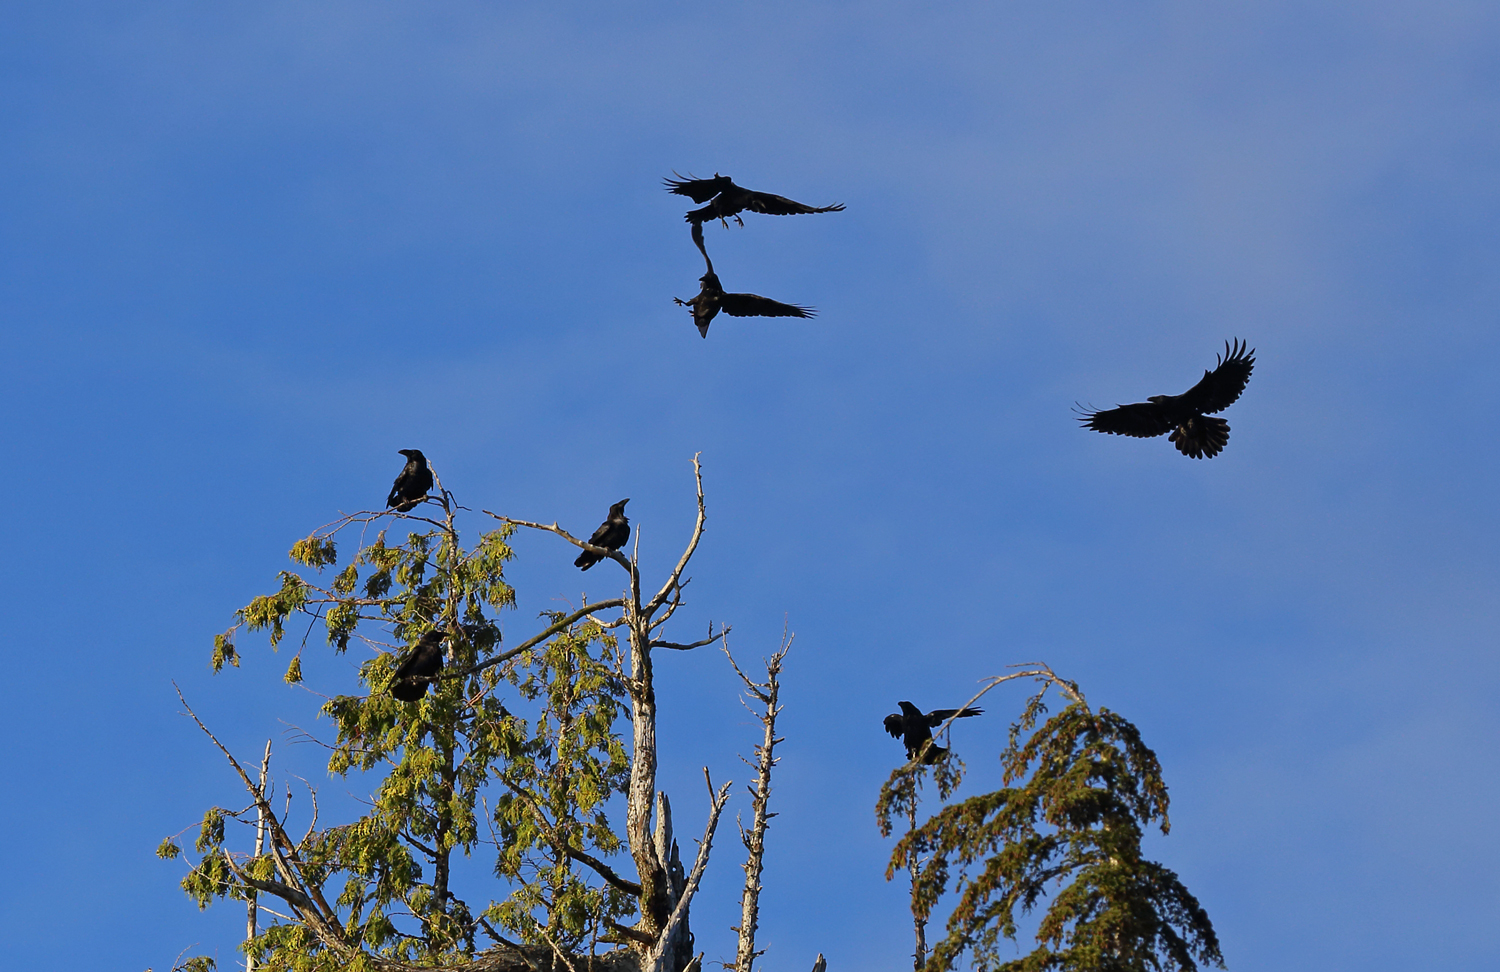 Ravens roosting playing in trees corvid corvus corax Southeast Alaska flock big black birds funny pretty